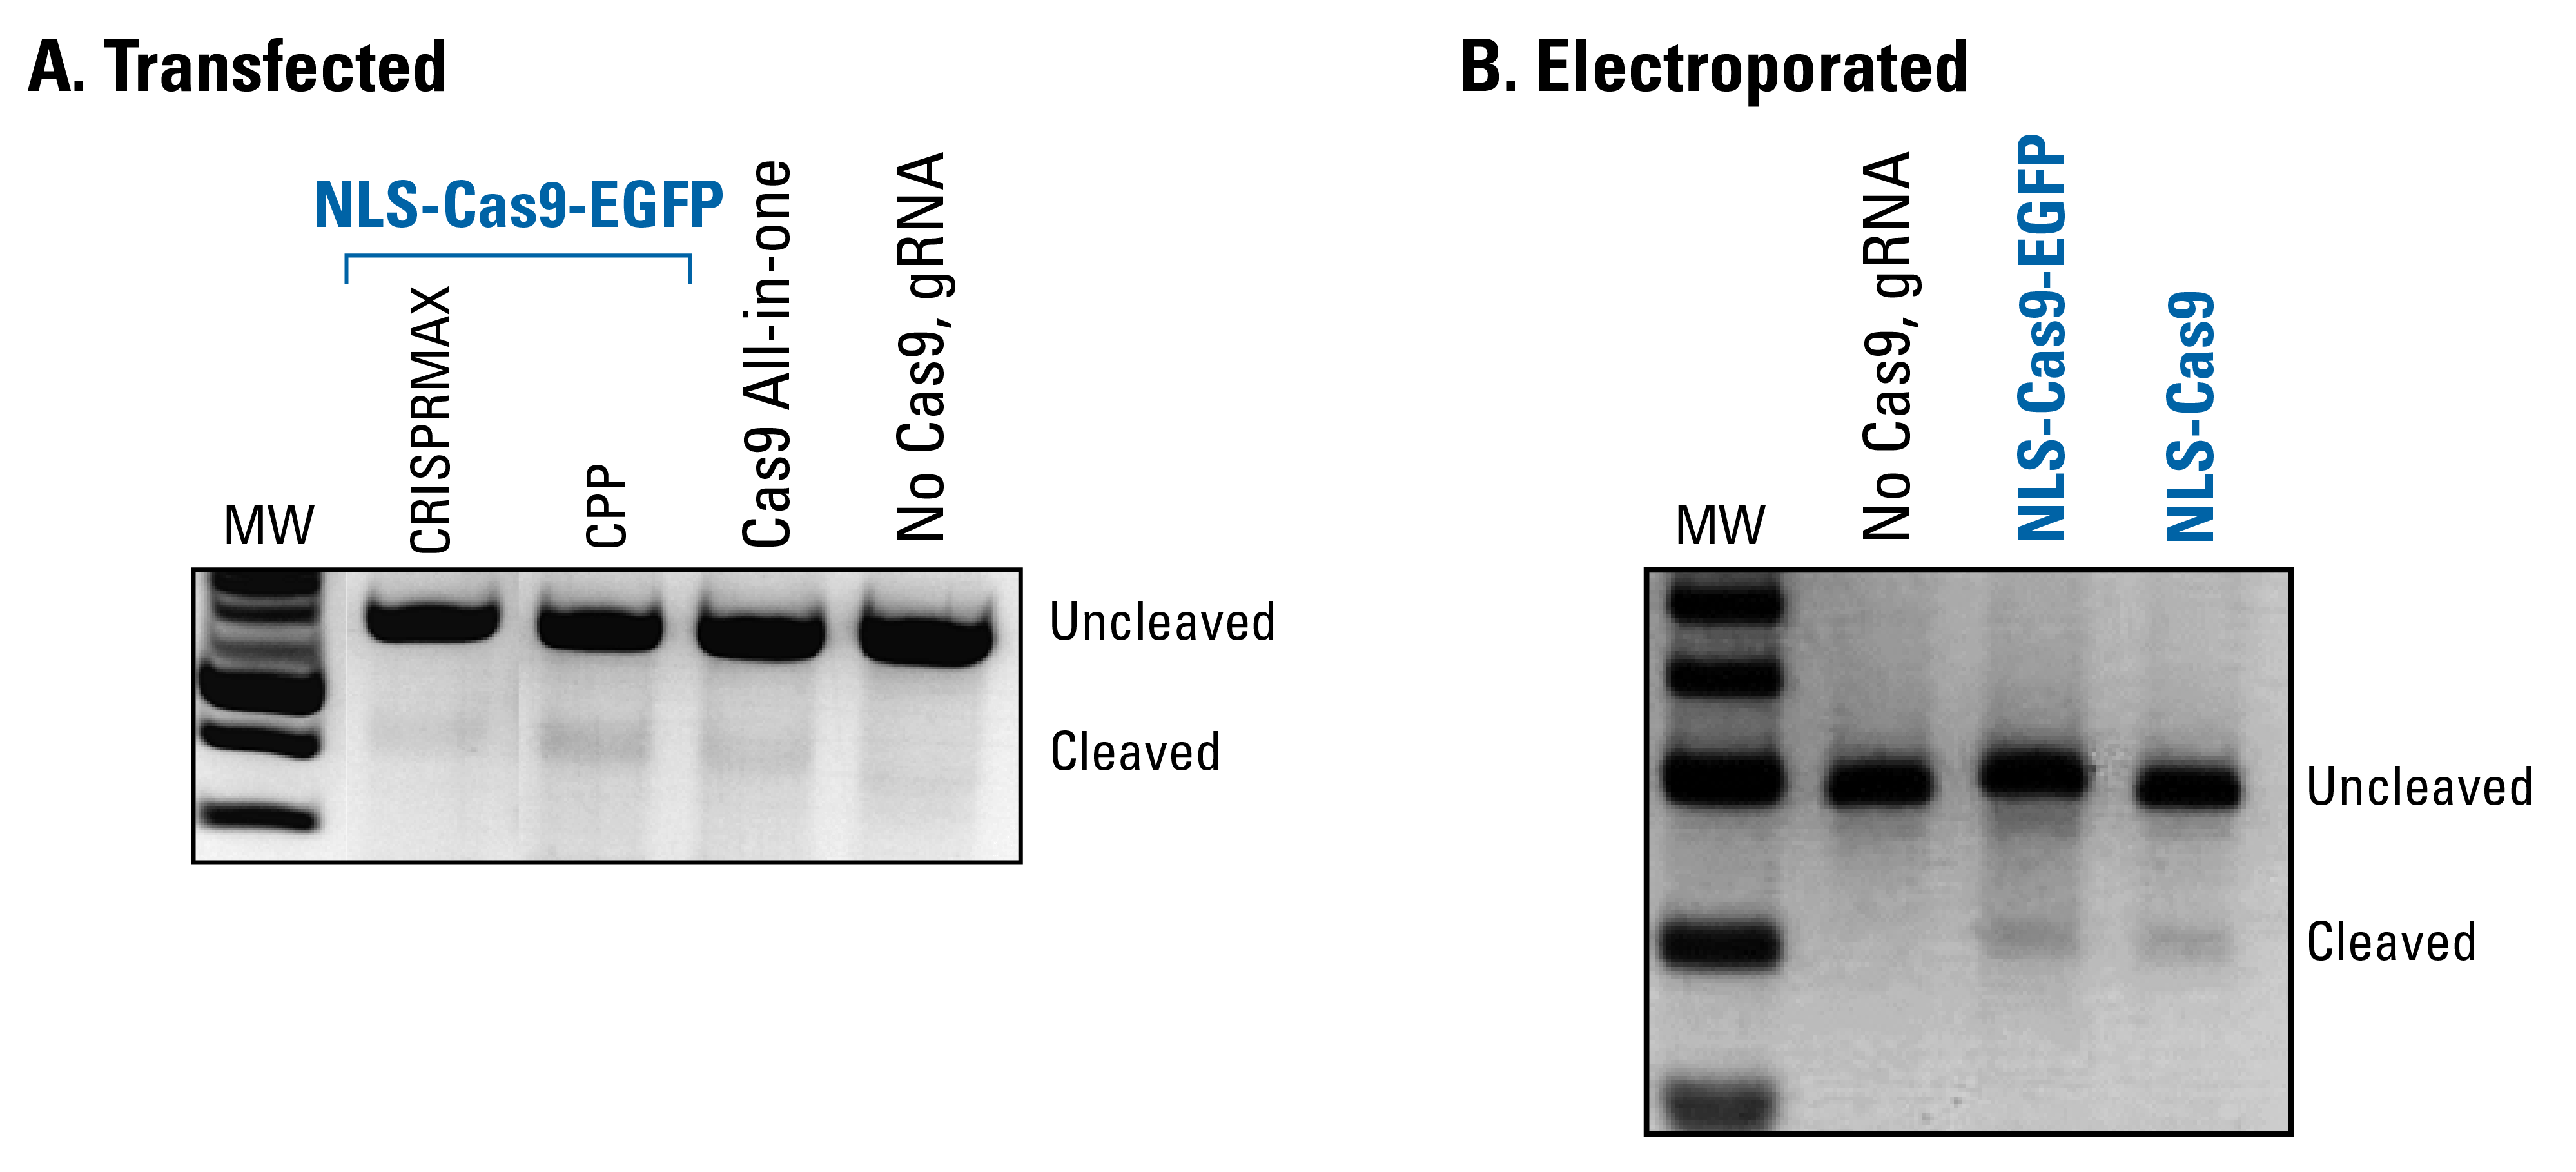 NLS-Cas9-EGFP protein is functional in an in vivo assay